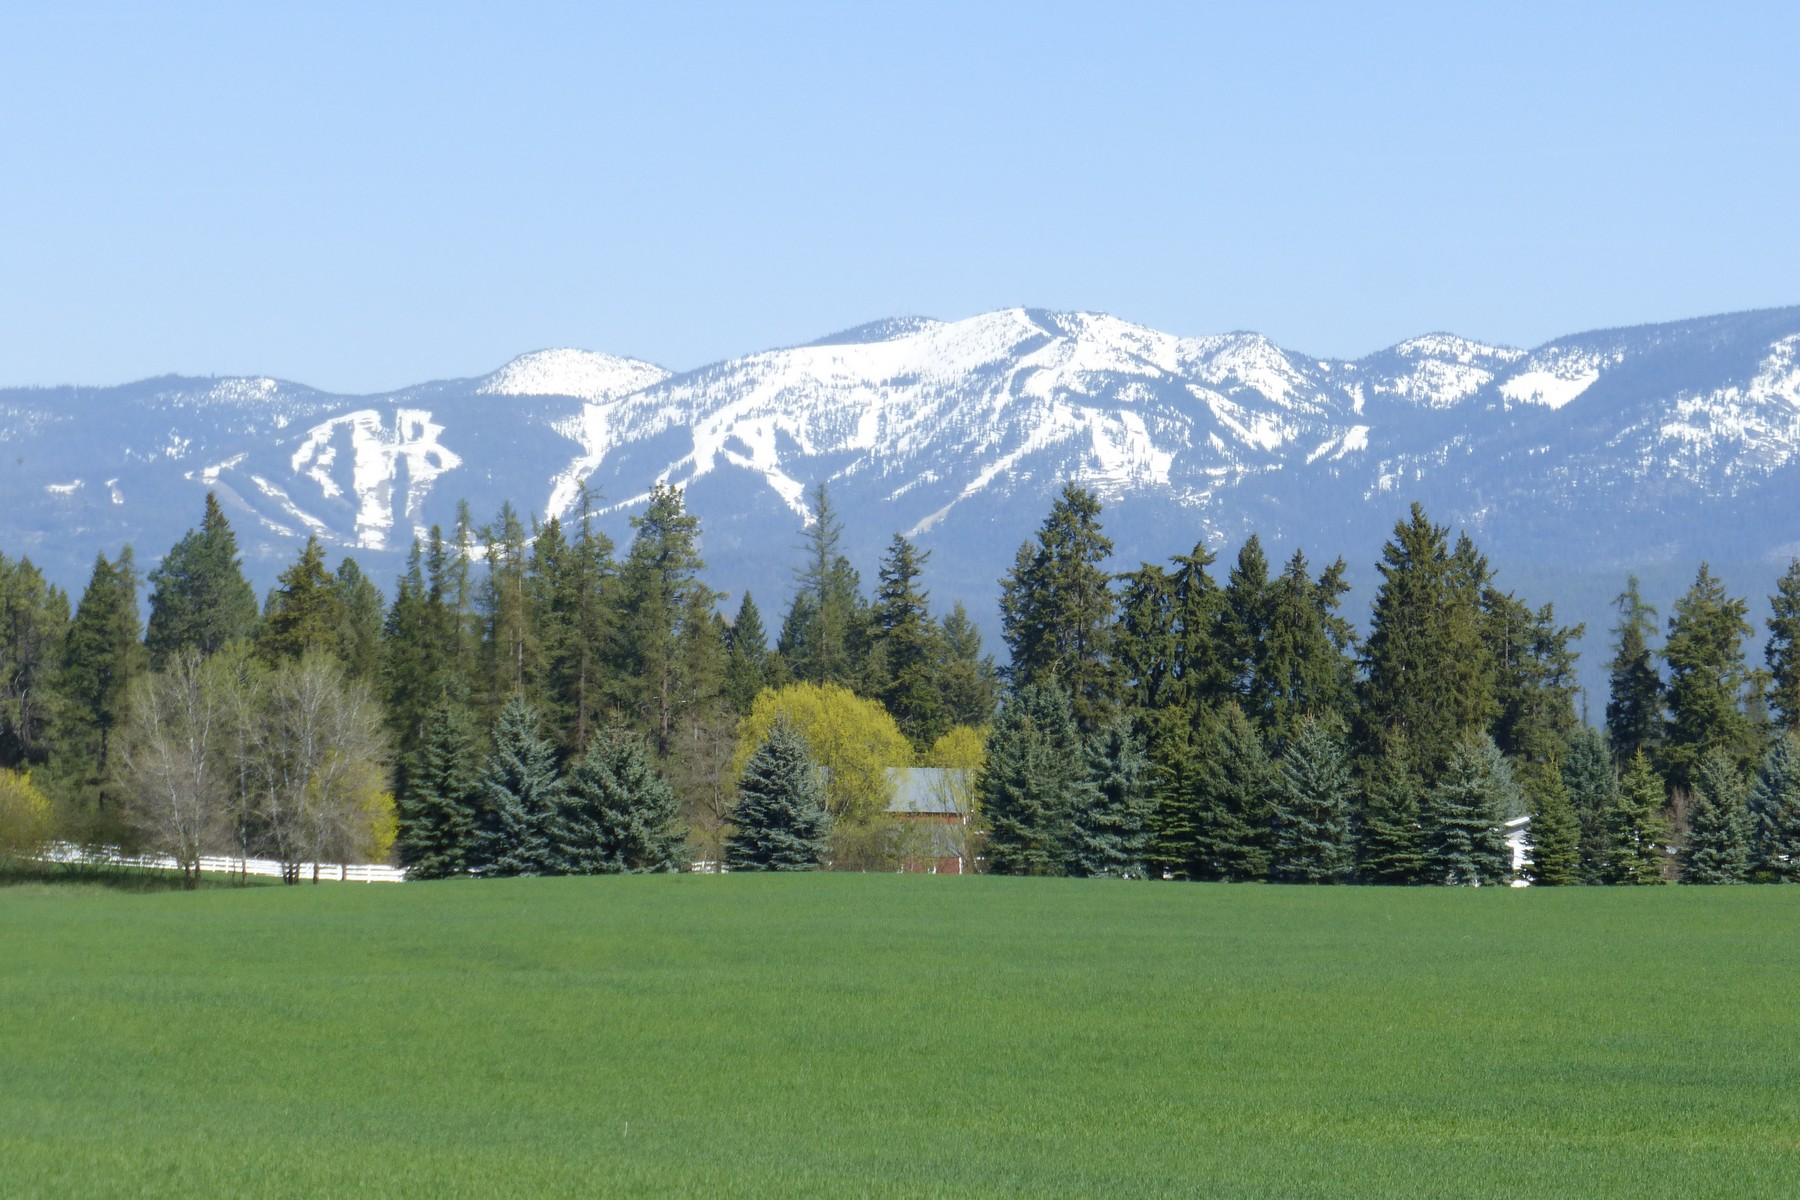 Terreno por un Venta en 30 Acre Estate Property Nhn Whitefish Stage Rd Whitefish, Montana, 59937 Estados Unidos